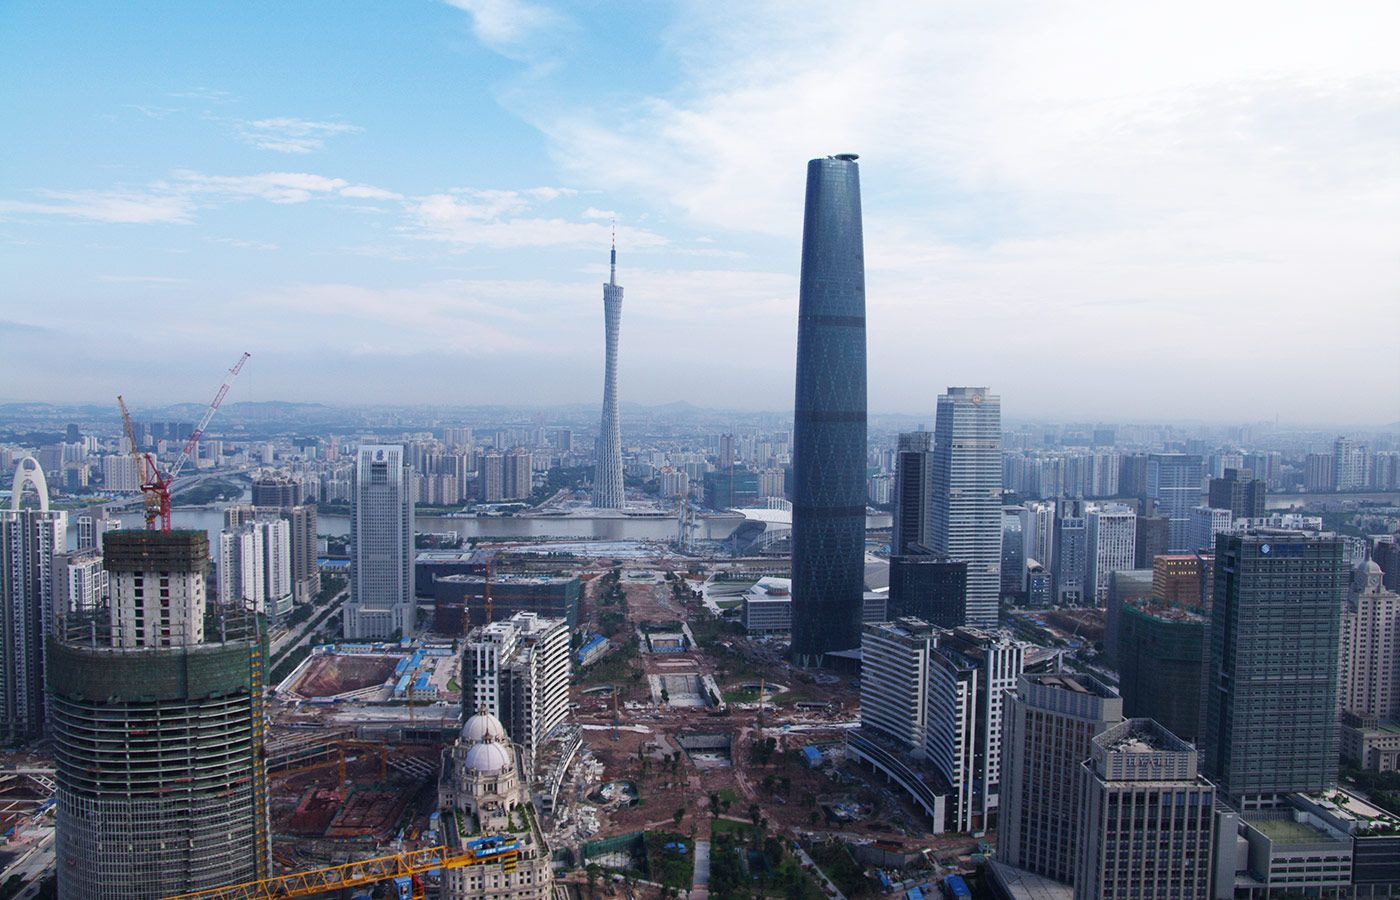 WEEK2- Guangzhou is one of the mega city in the world  It has some